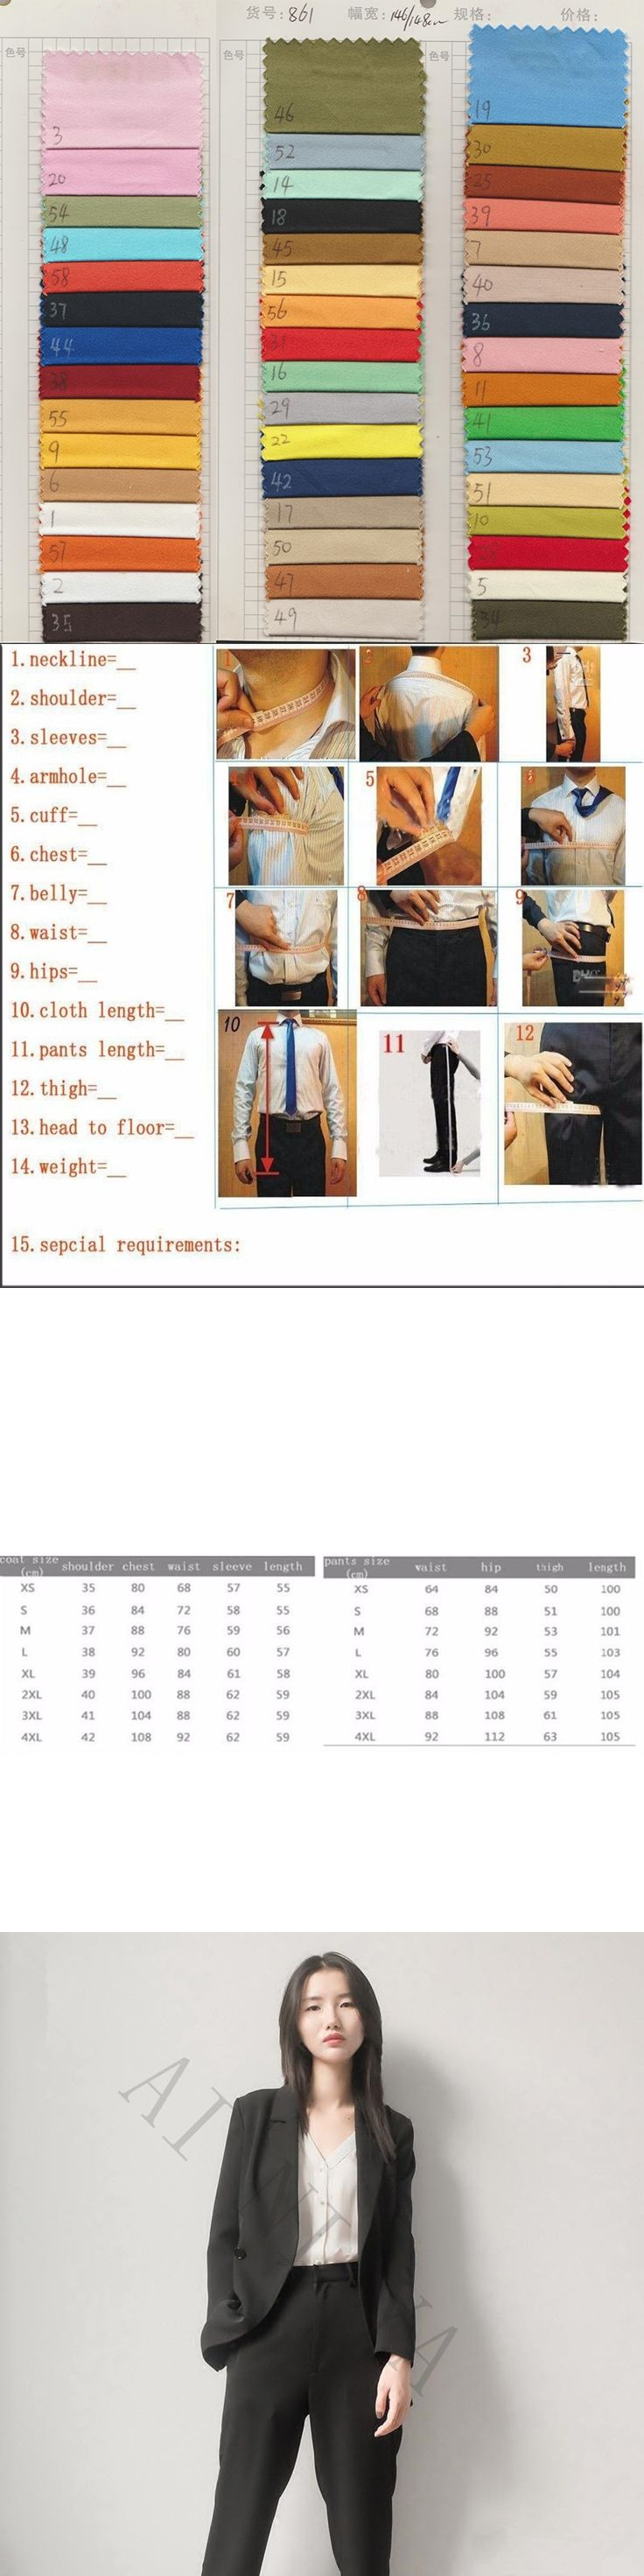 Jacket+Pants Womens Business Suits Black Female Office Uniform Formal Ladies Trouser Suit Double Breasted Prom Party 2 Piece